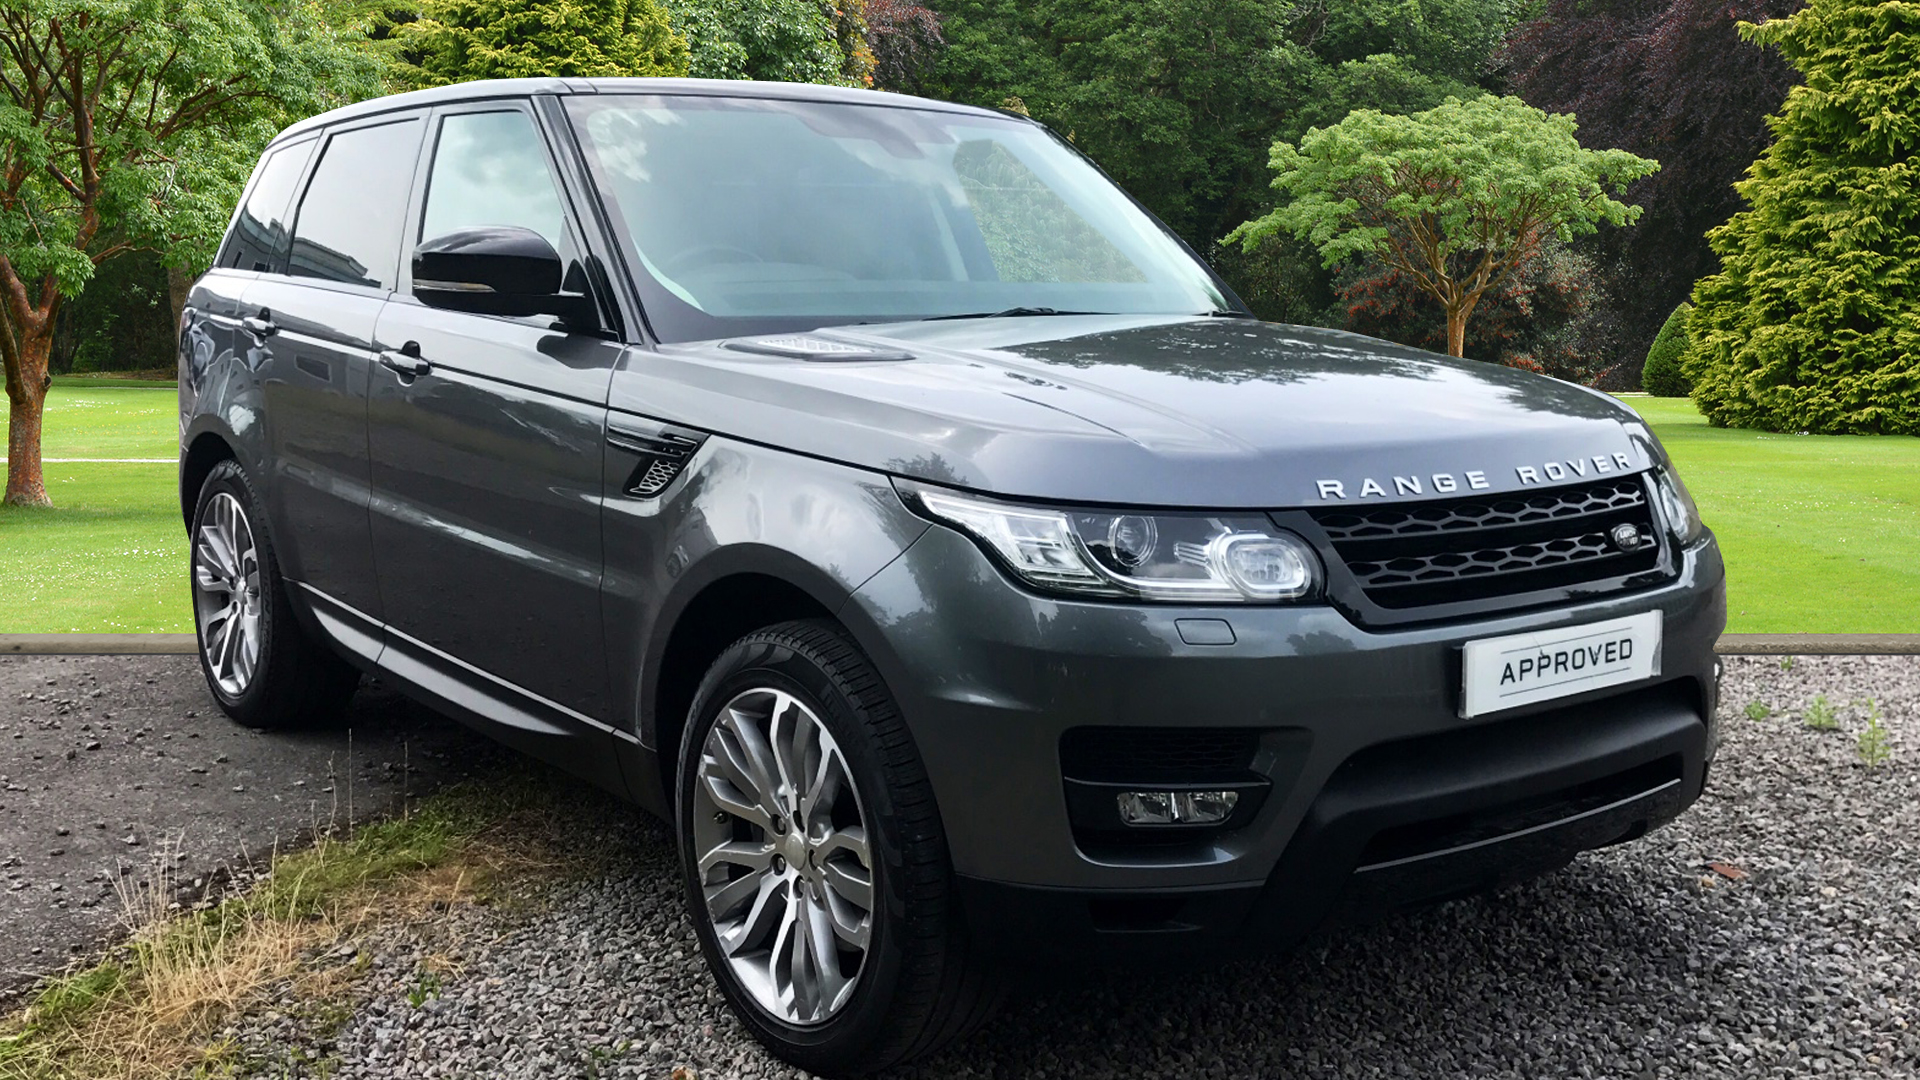 Used corris grey land rover range rover sport for sale surrey - Thumbnail 1